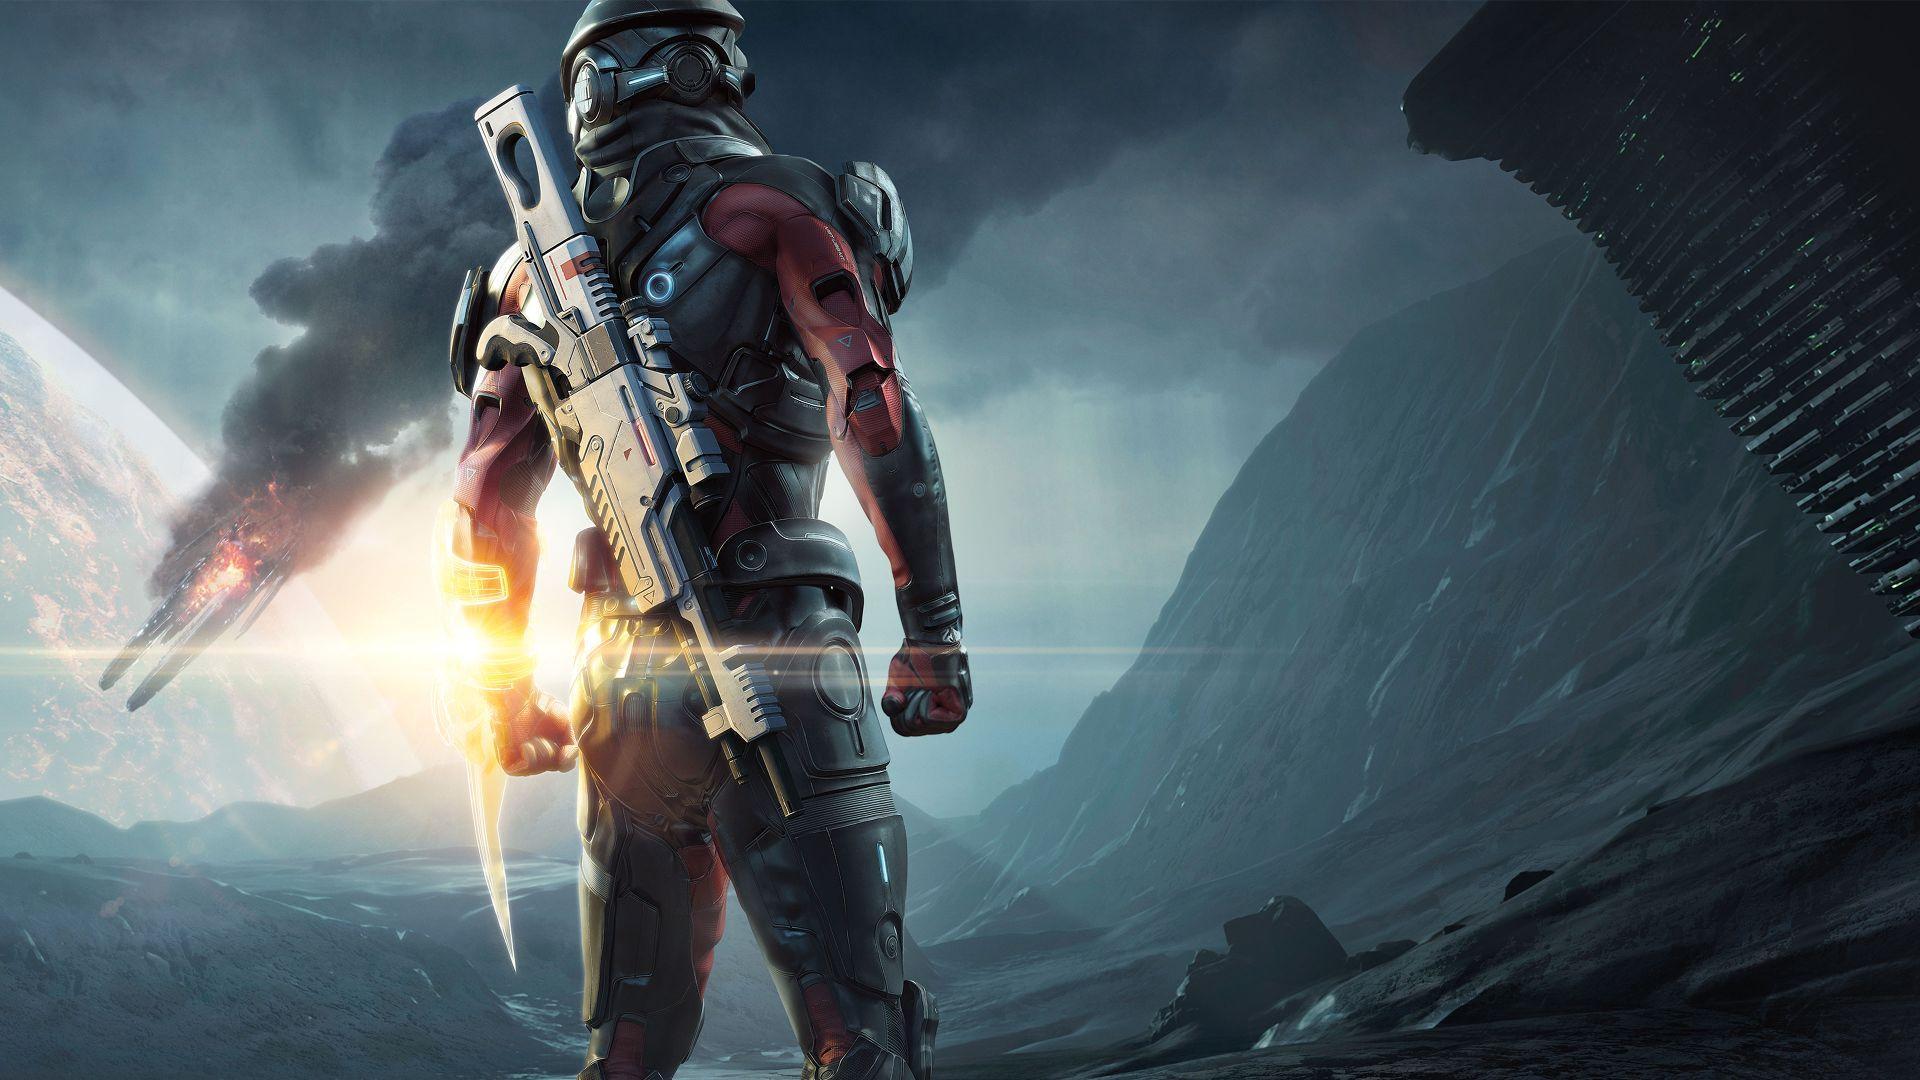 Mass Effect: Andromeda Drops another Gameplay Video